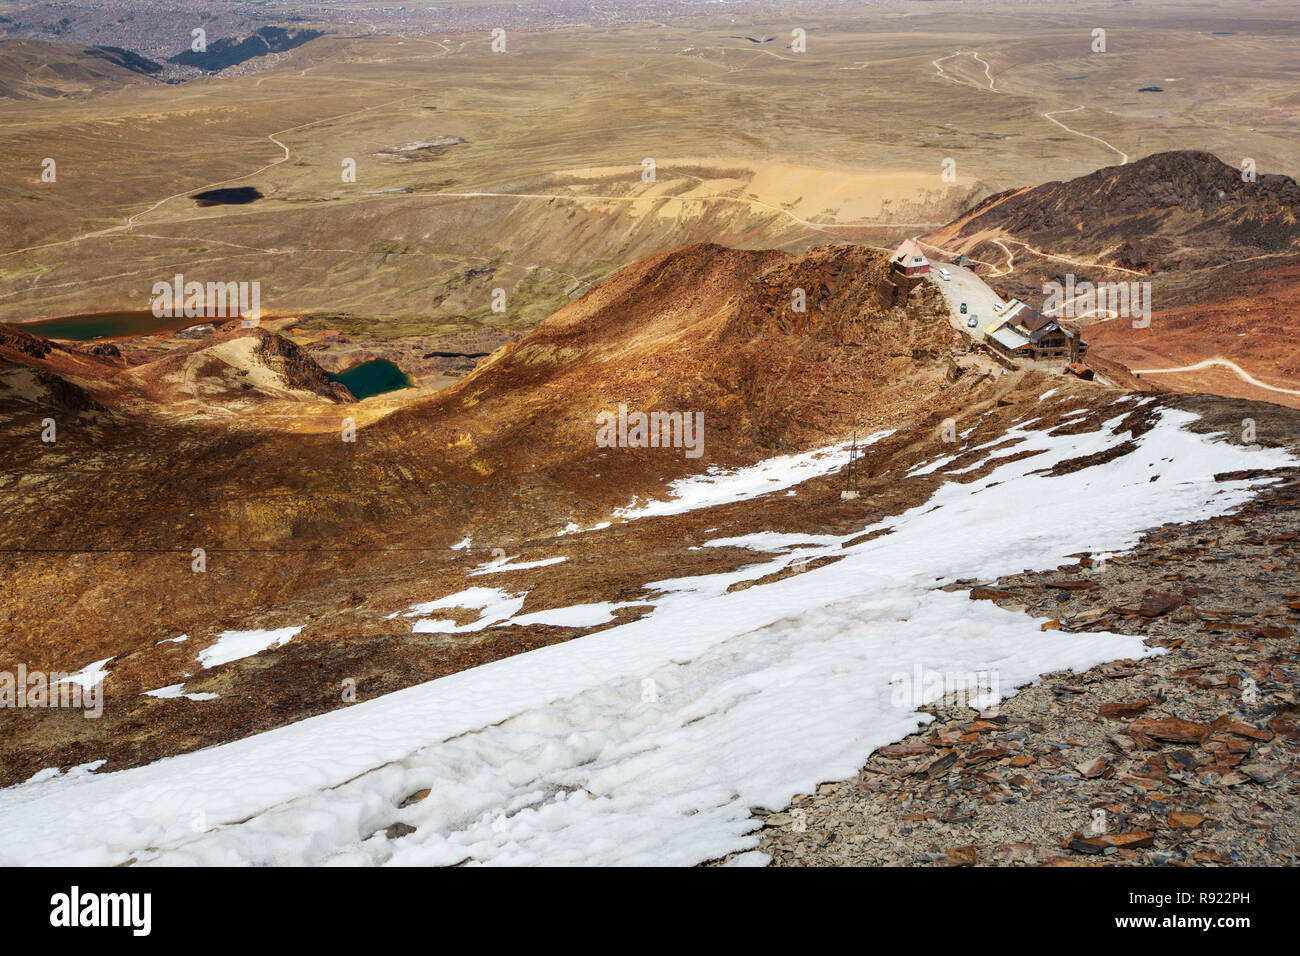 The peak of Chacaltaya (5,395m), which until 2009 had a glacier which supported the worlds highest ski lift at over 17,000 feet. The glacier finally disappeared completely in 2009 due to climate change induced melting, all that is left now is a small snow patch. - Stock Image